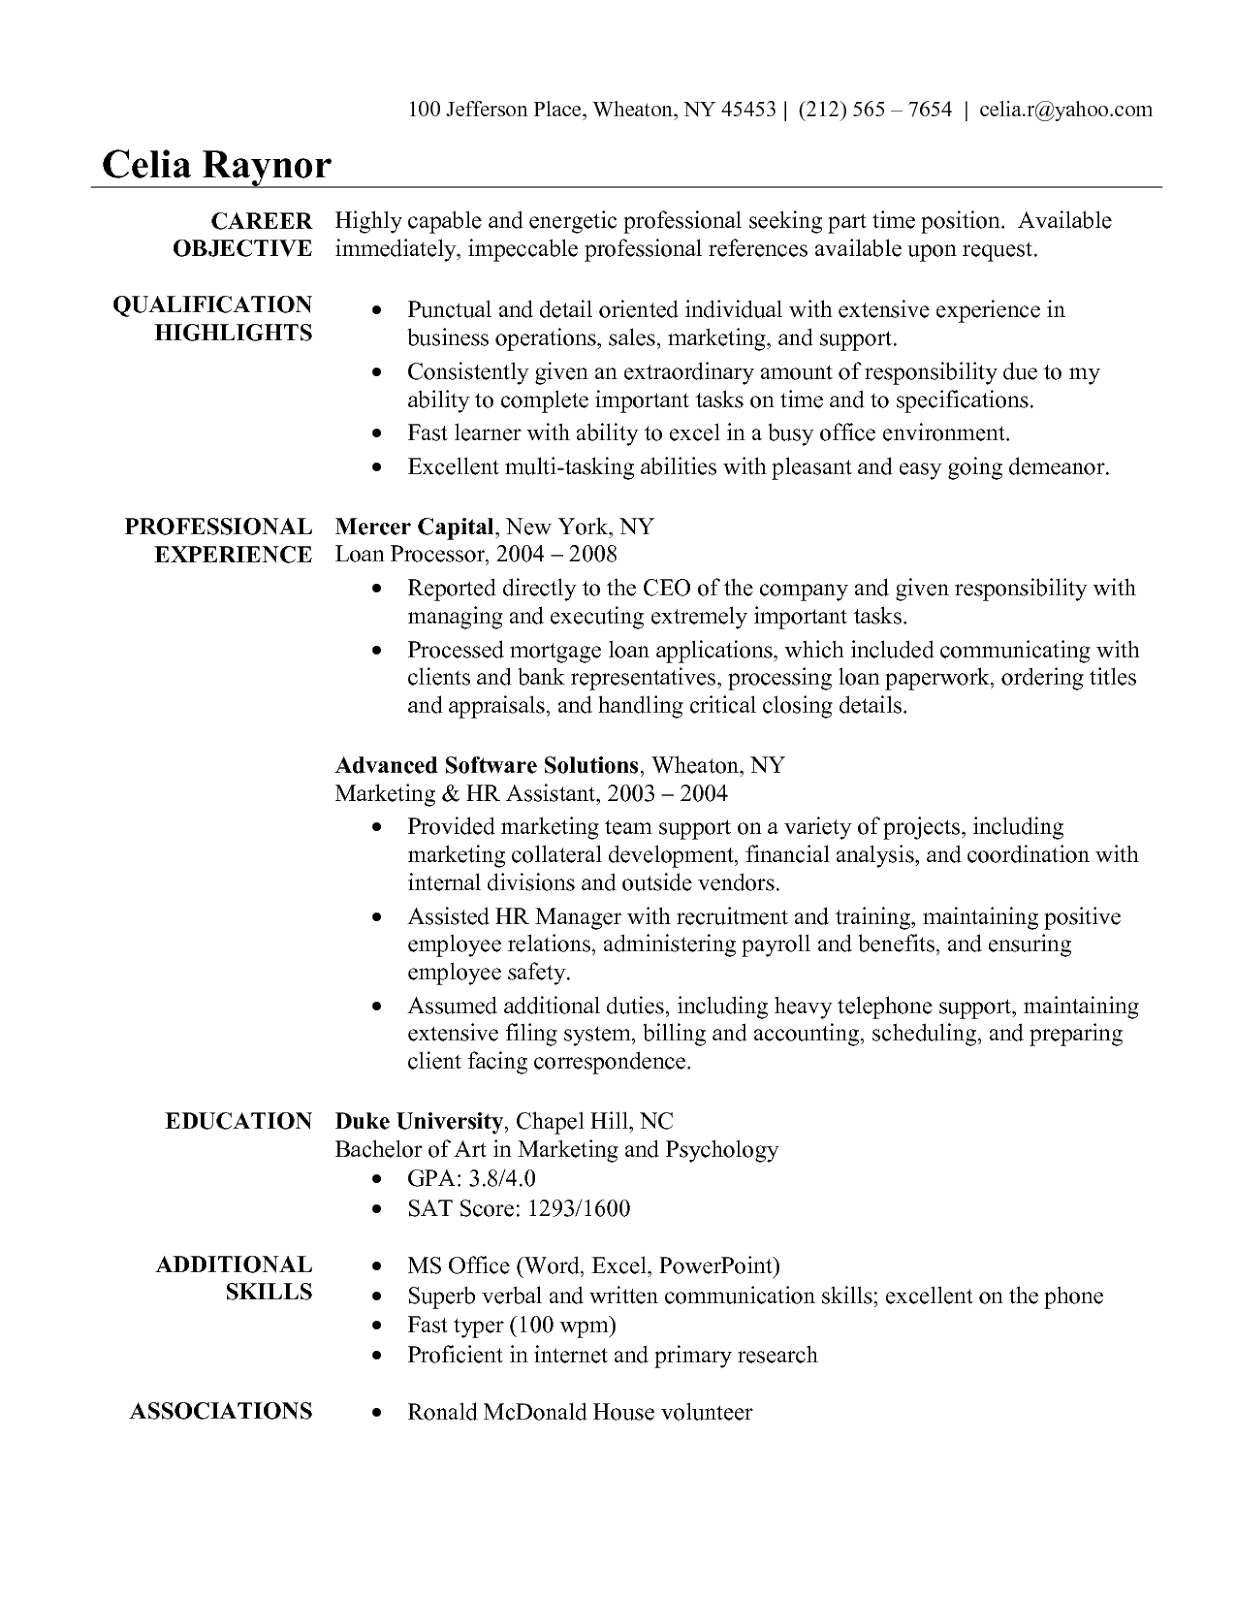 office assistant duties resume best letter sample assistant job description sample medical best letter sample assistant job description sample medical